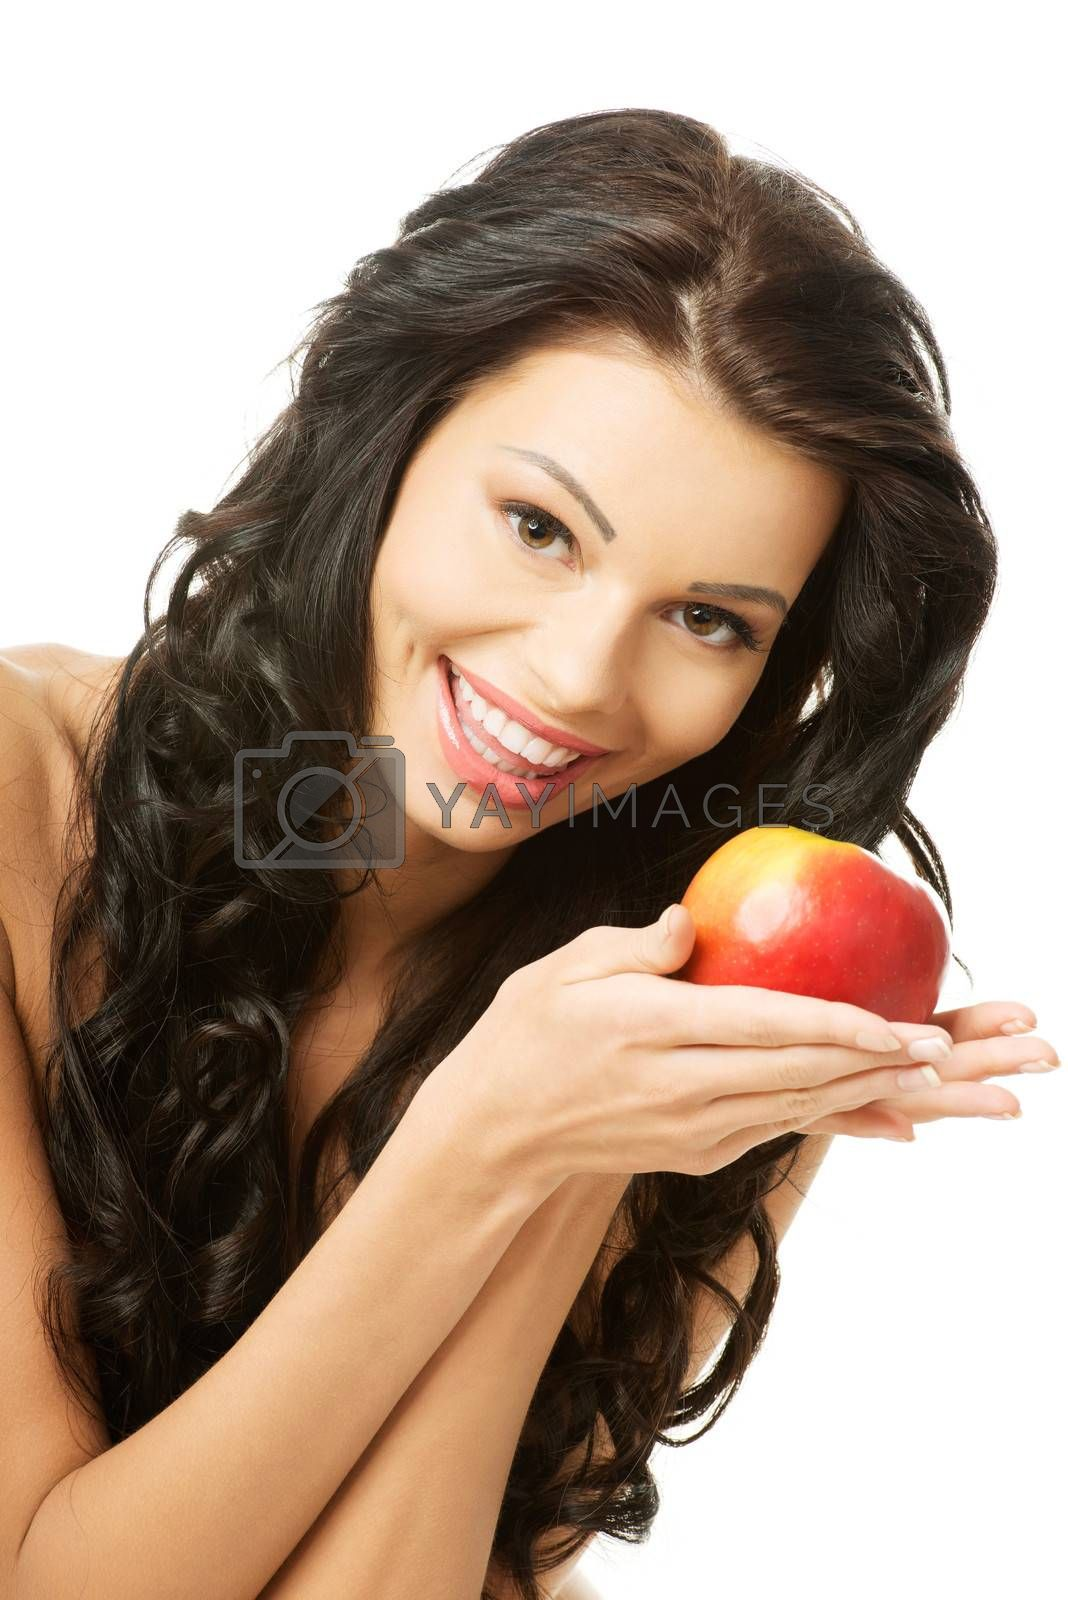 Sexy woman with red apple, isolated on white